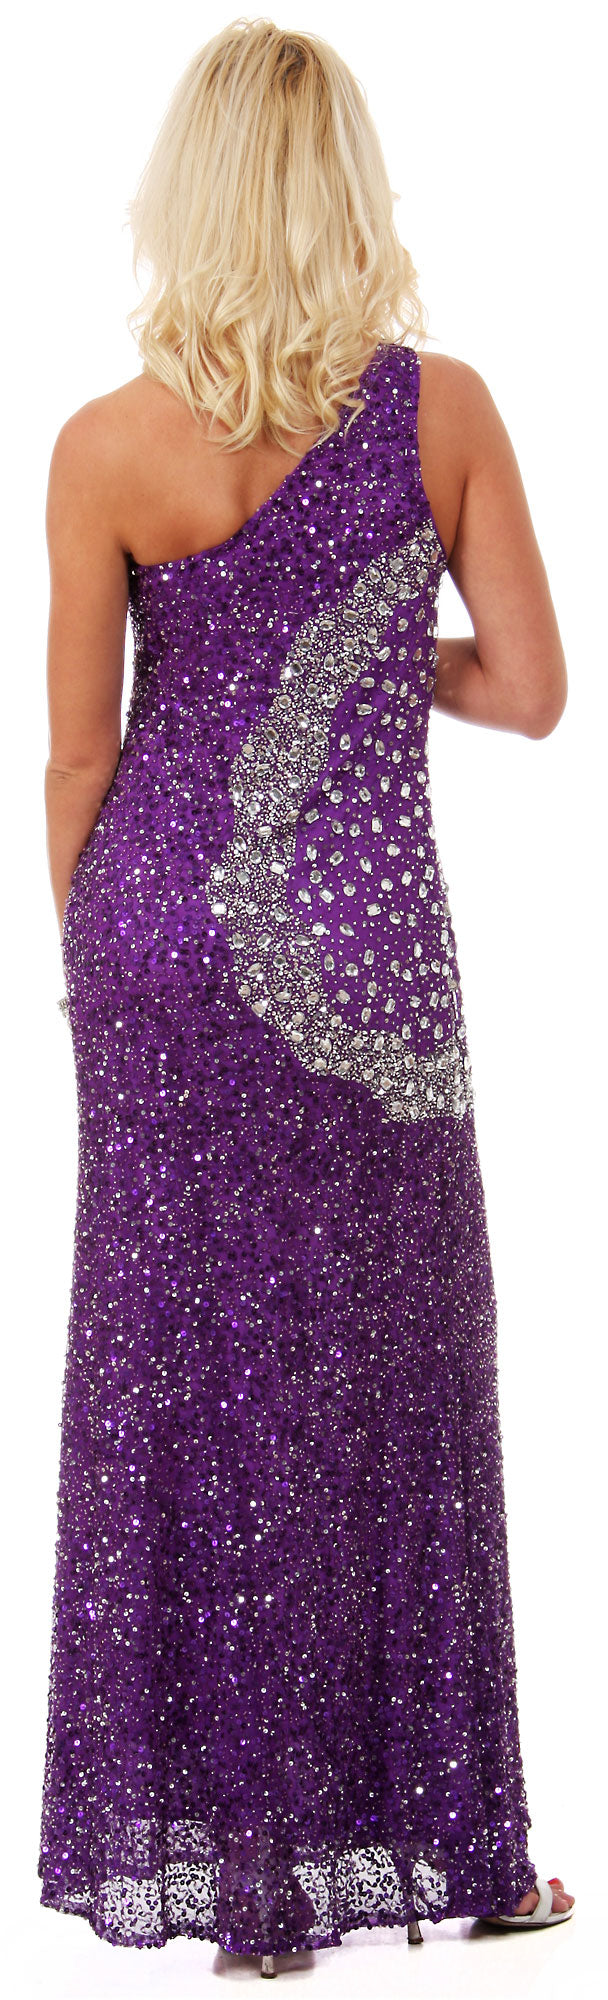 Back image of Long Sequined Formal Prom Dress With Rhinestones Waist